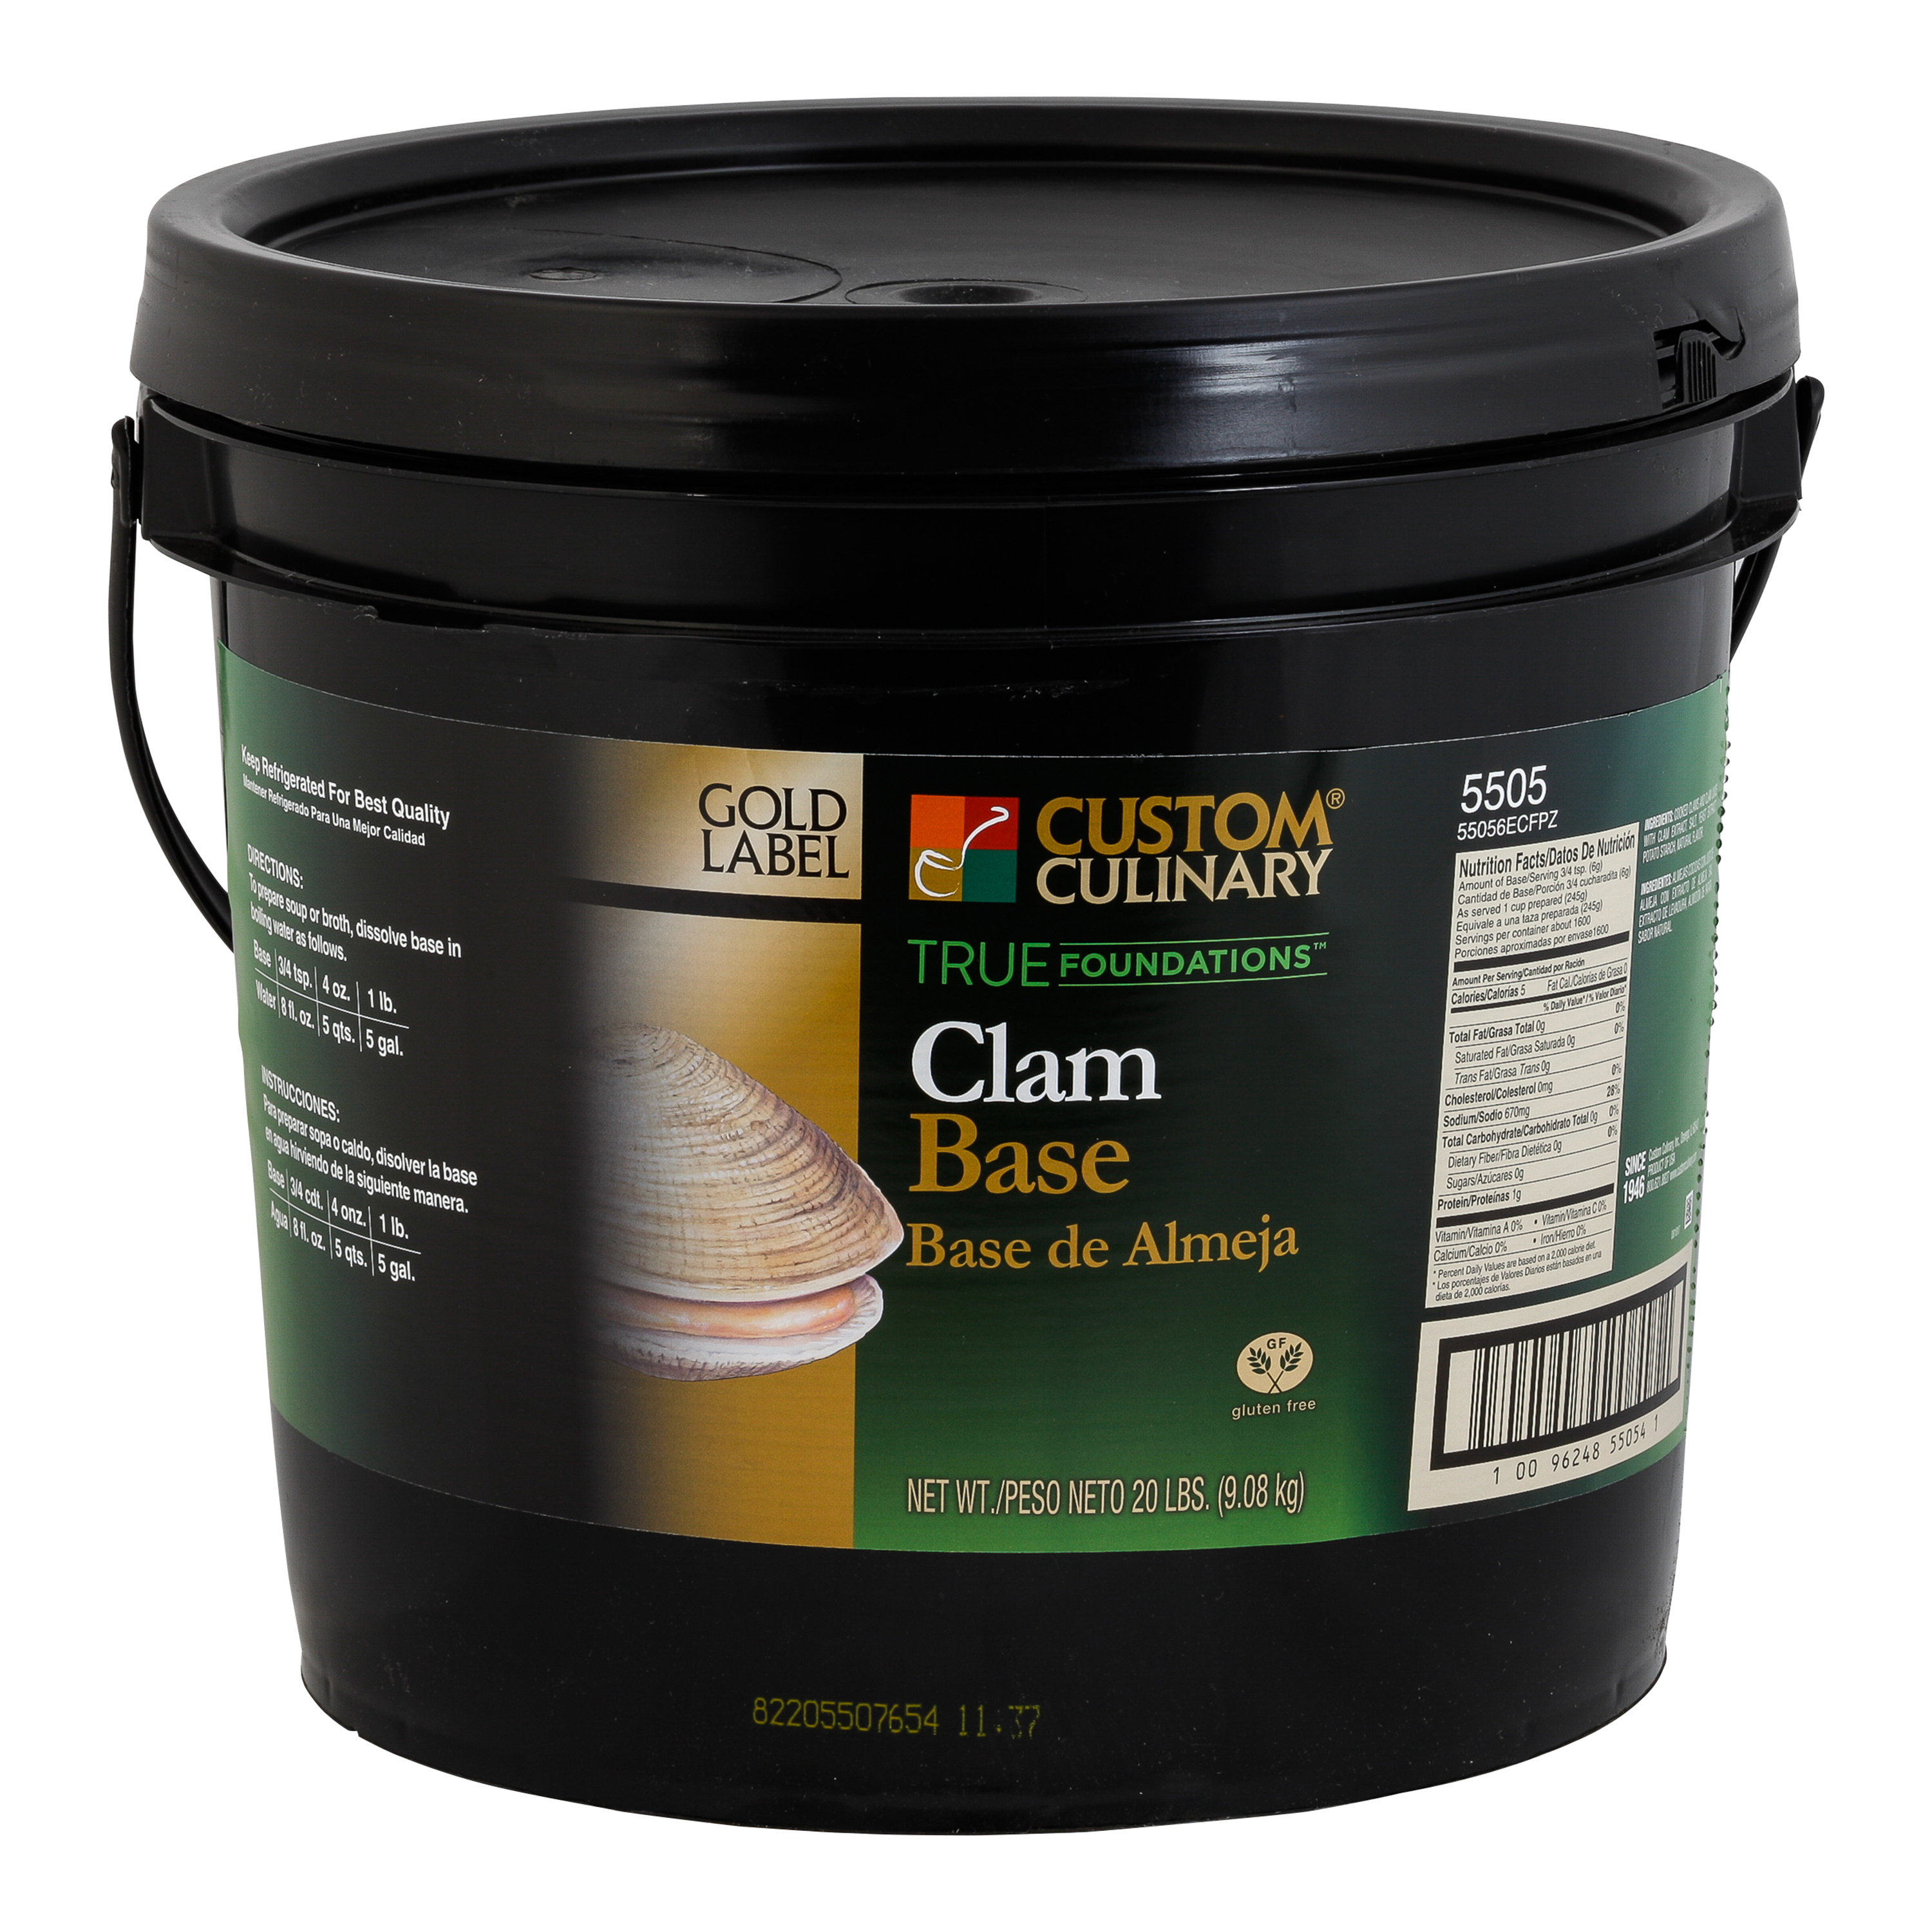 5505 - GOLD LABEL Clam Base No MSG added Gluten Free Clean Label